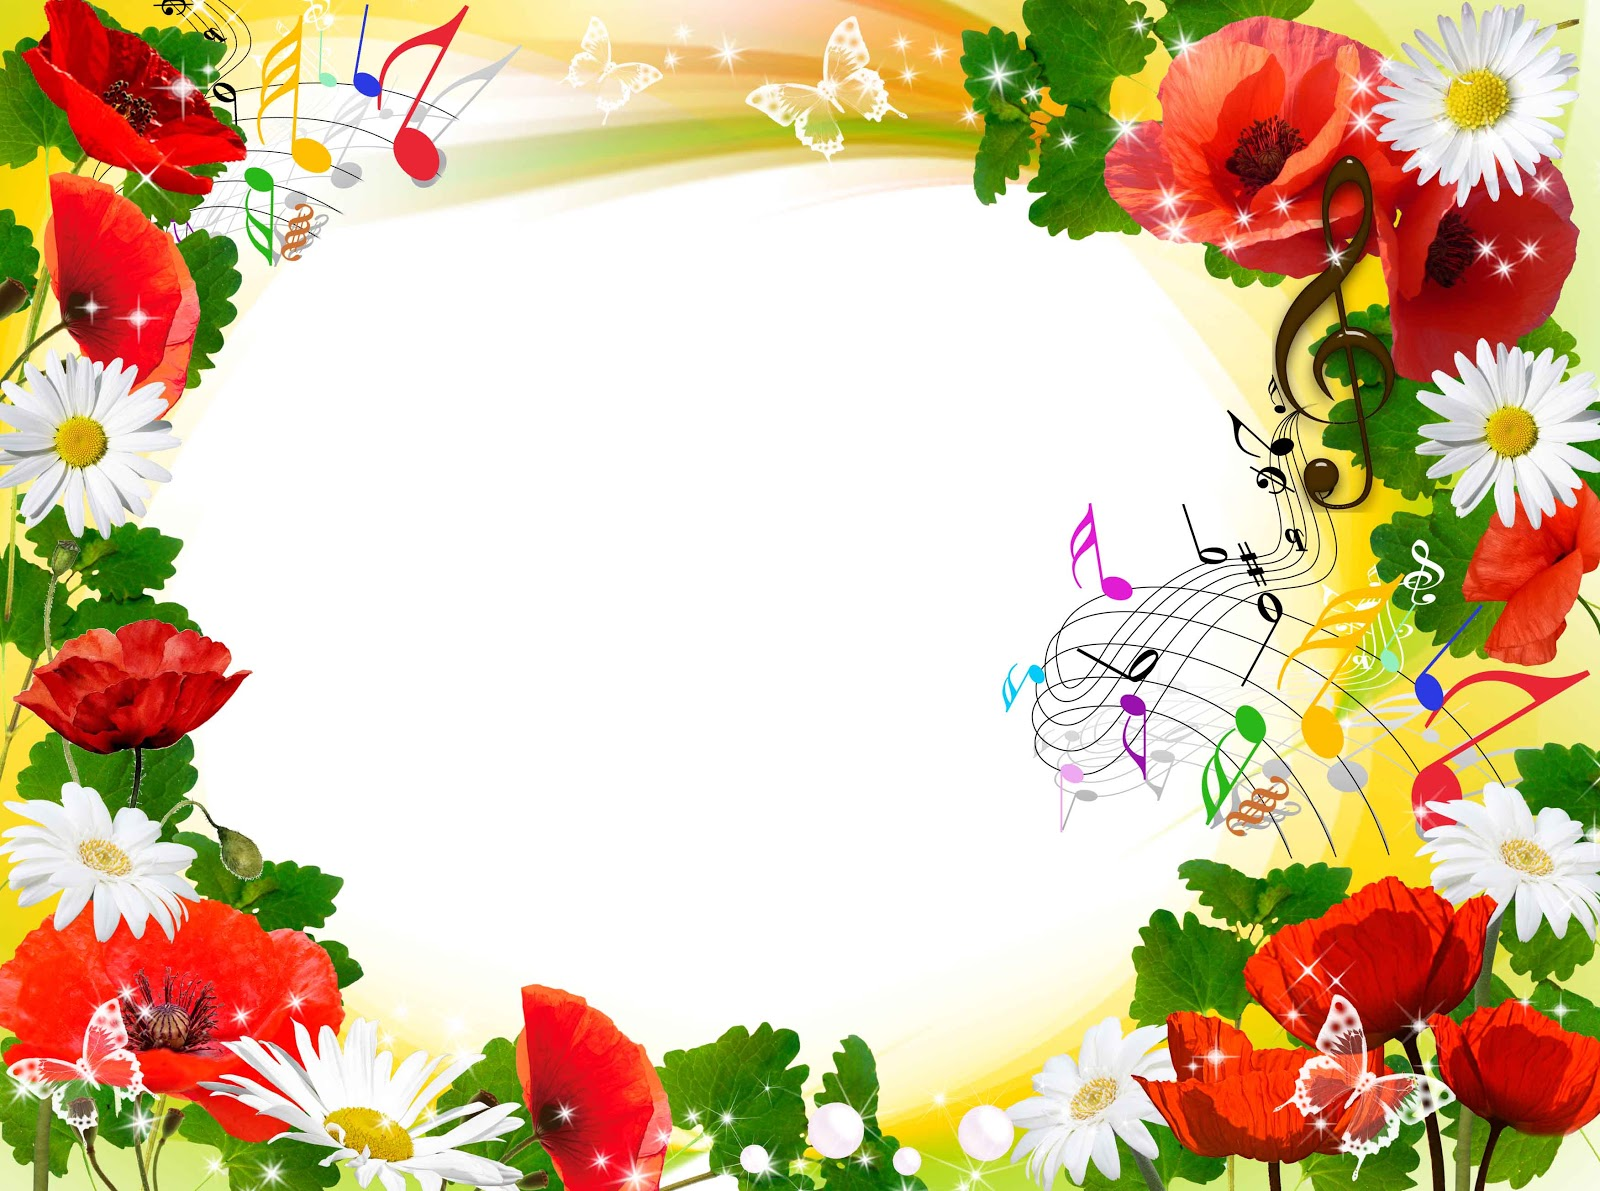 Floral frame wallpapers high quality download free - Flower wallpaper border ...